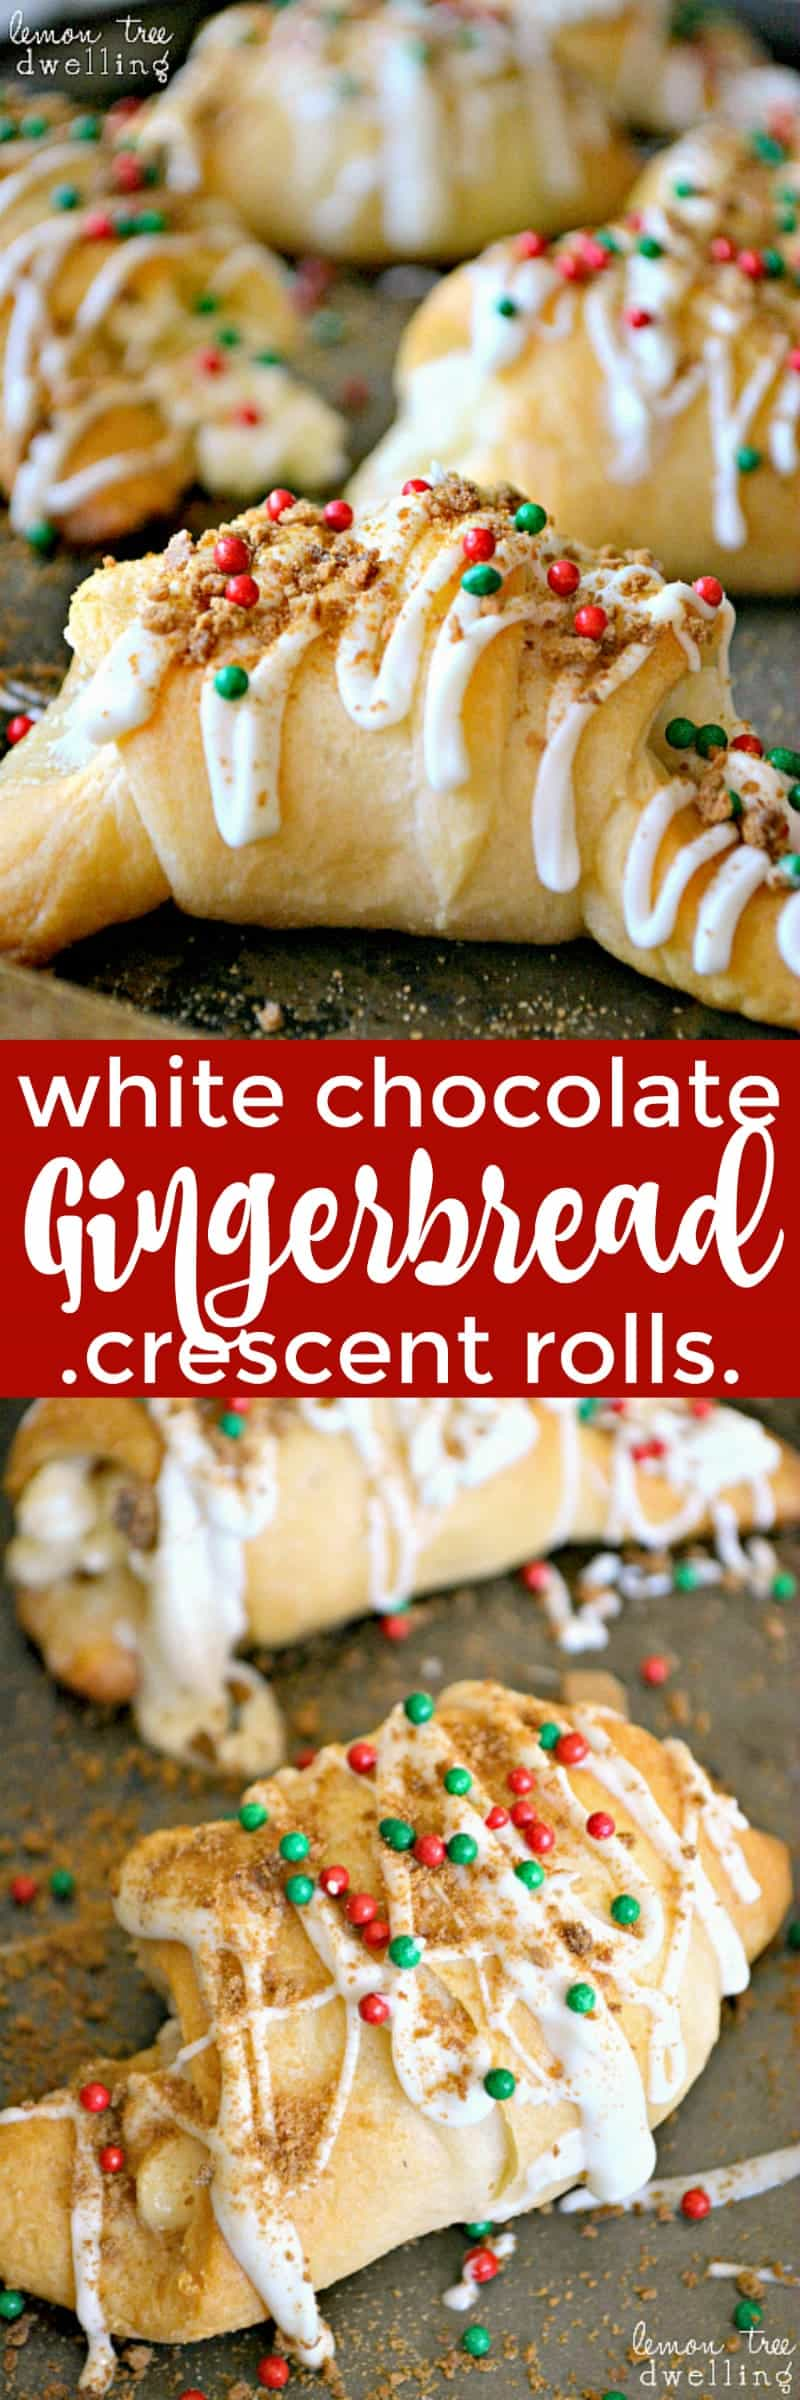 White Chocolate Gingerbread Crescent Rolls are a 5-minute decadent breakfast roll. Chocolate, cream cheese, gingersnap. A perfect holiday breakfast treat!